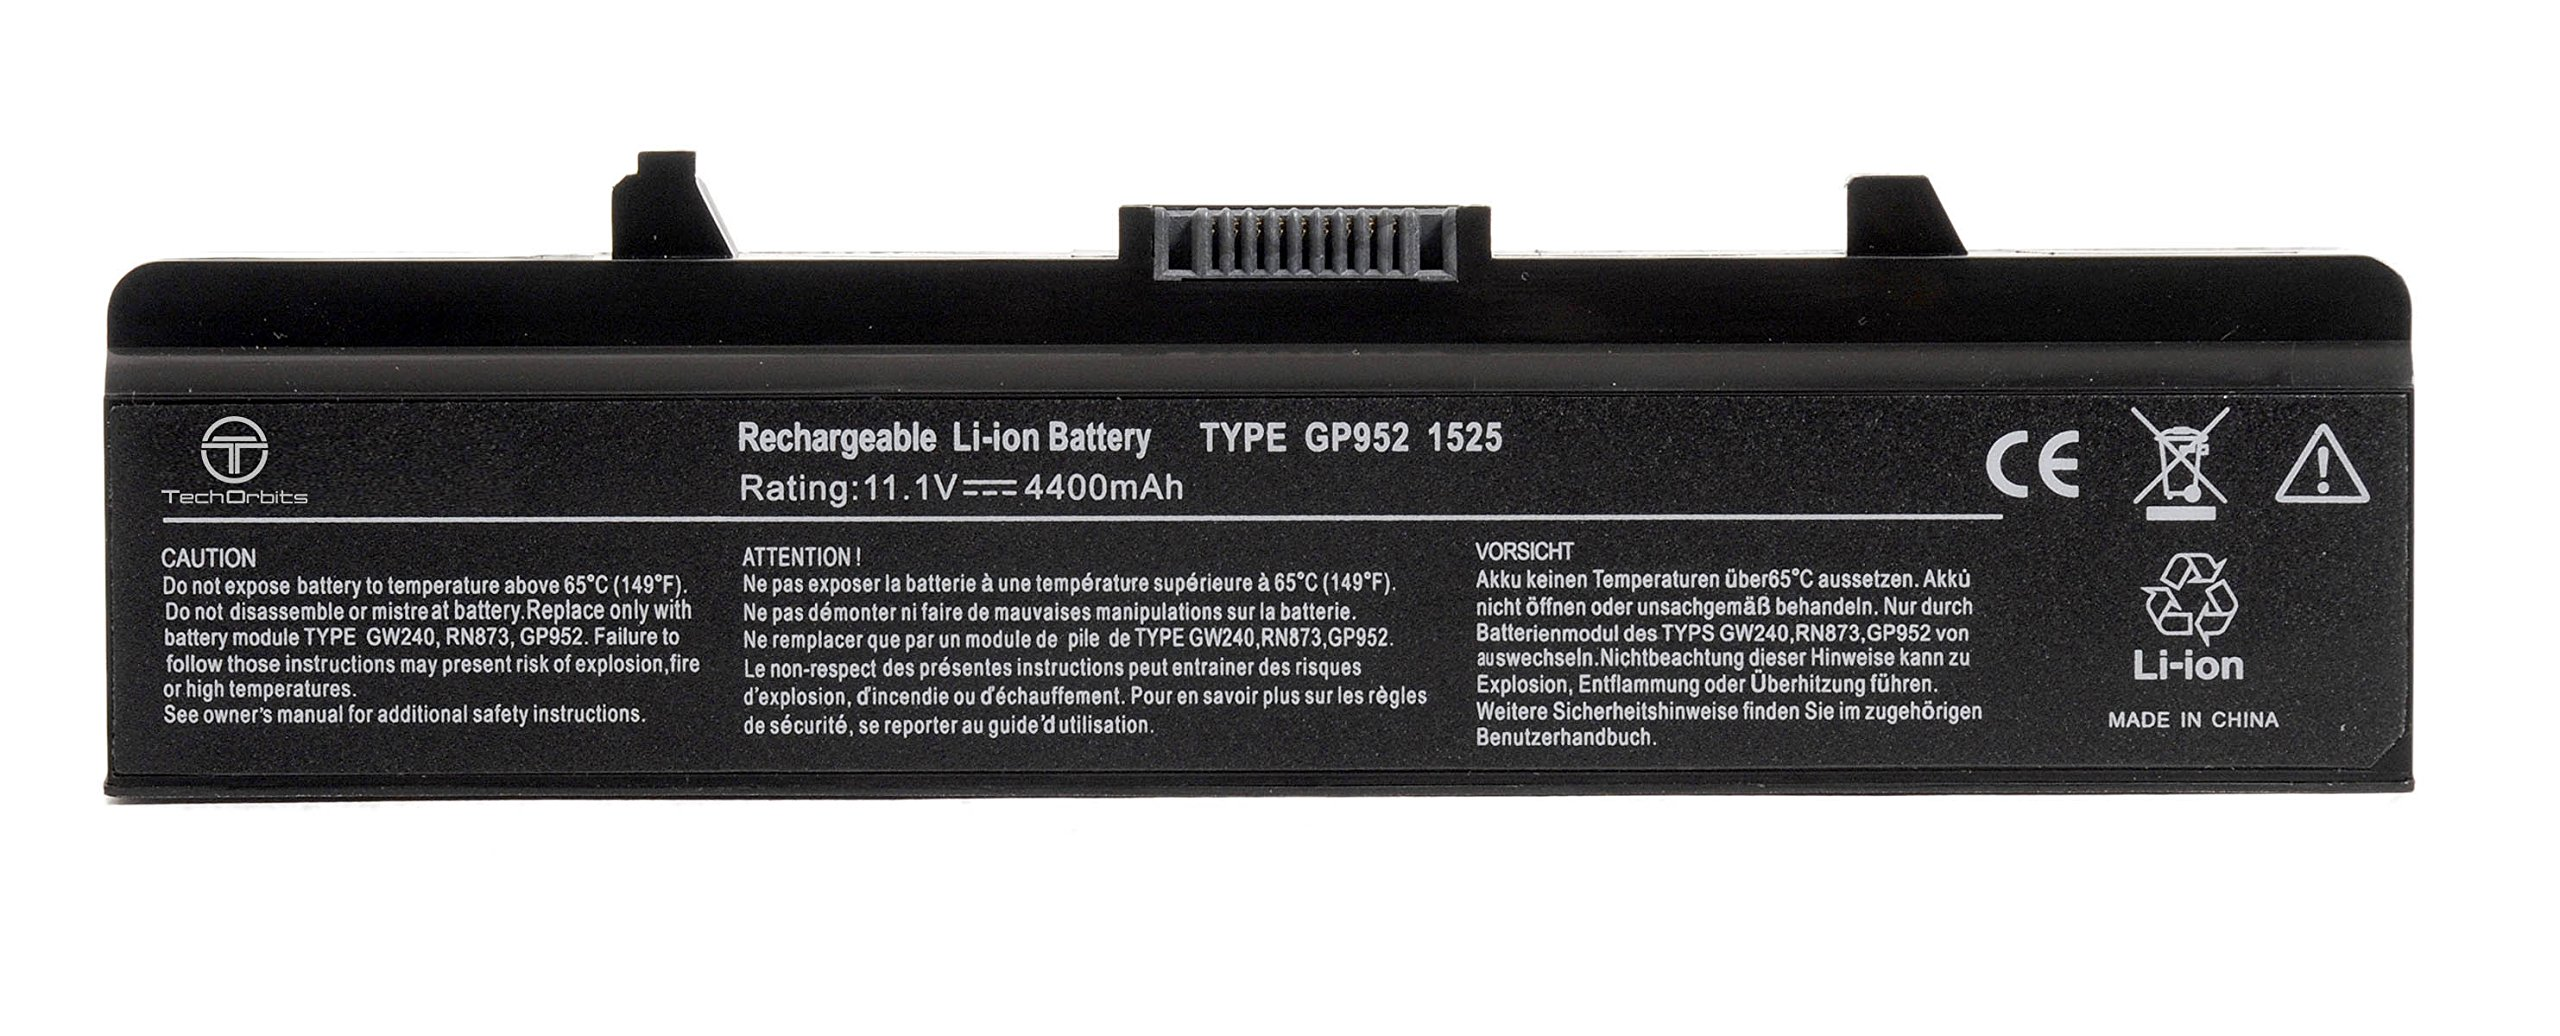 TechOrbits New Laptop Battery for Dell Inspiron 1525 1526 1545 1546 1750 1440 PP29L PP41L, Fits P/N X284G M911 M911G GW240 GP952 RN873 K450N RU586 C601H 312-0844 - 3 Years Warranty [Li-ion 6-cell] by TechOrbits